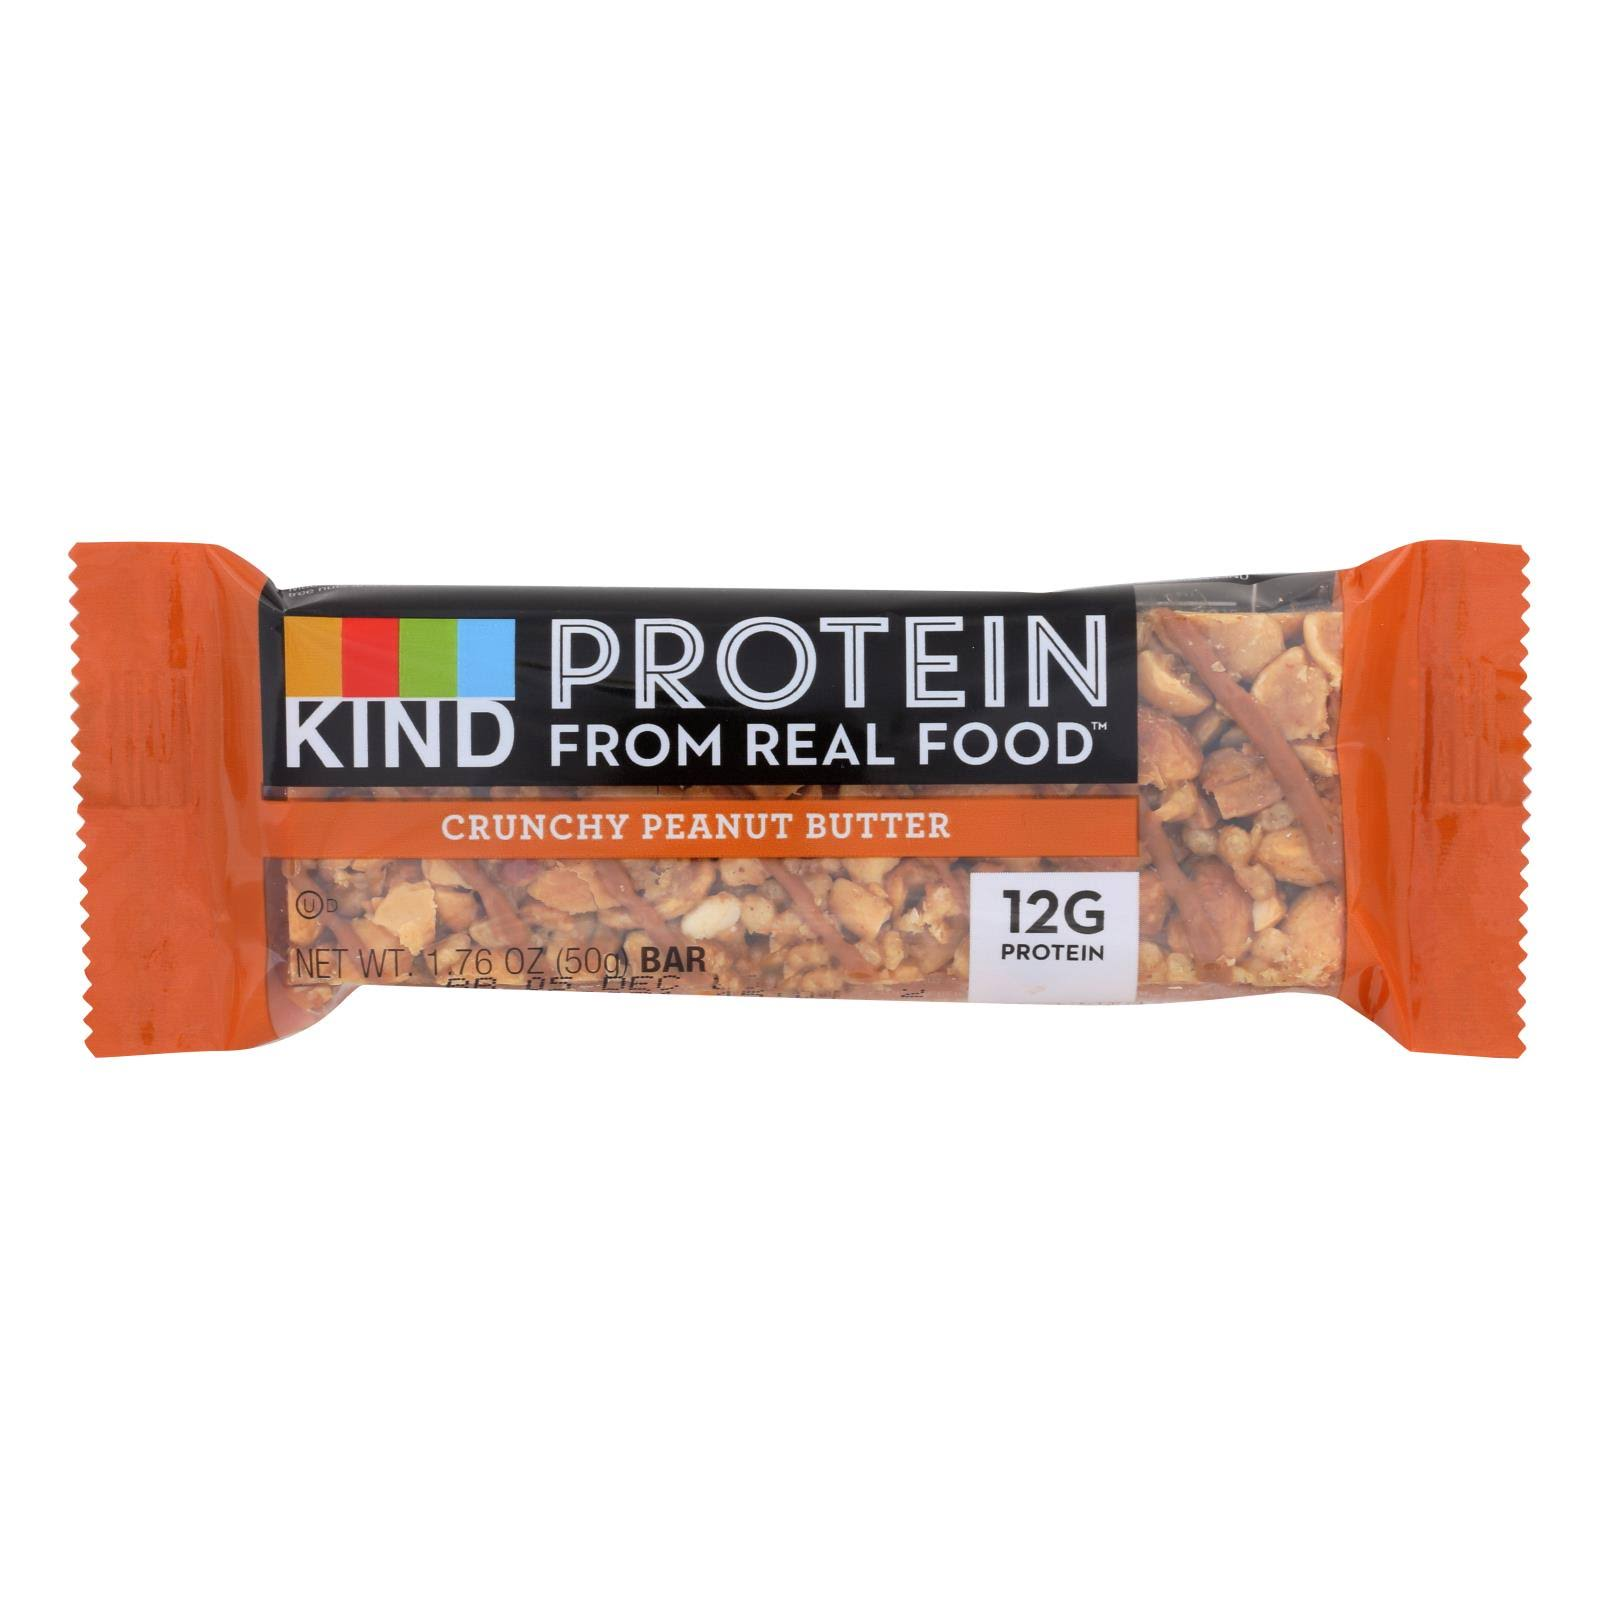 Kind Protein Bar - Crunchy Peanut Butter, 1.76oz